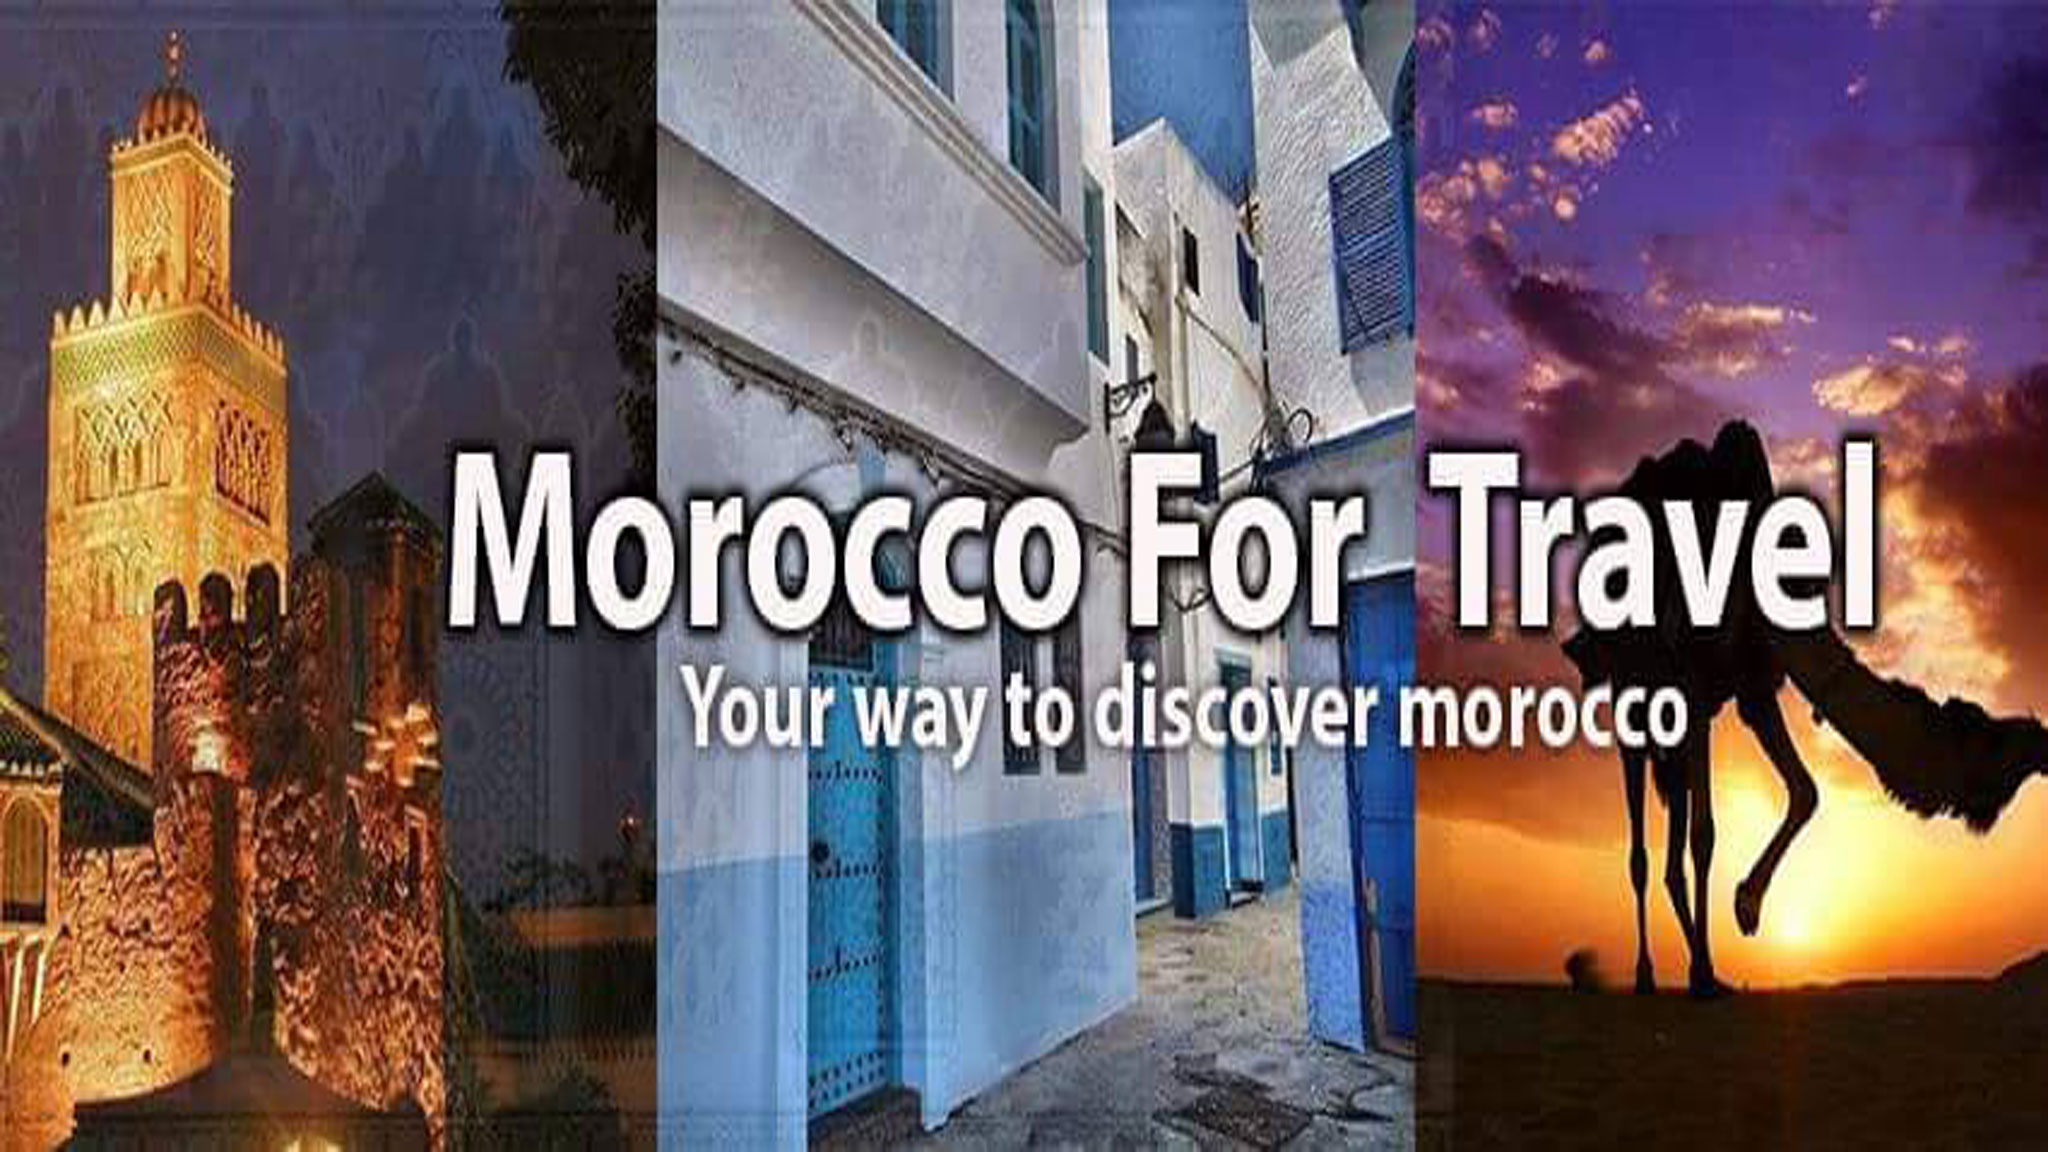 http://www.moroccofortravel.com/